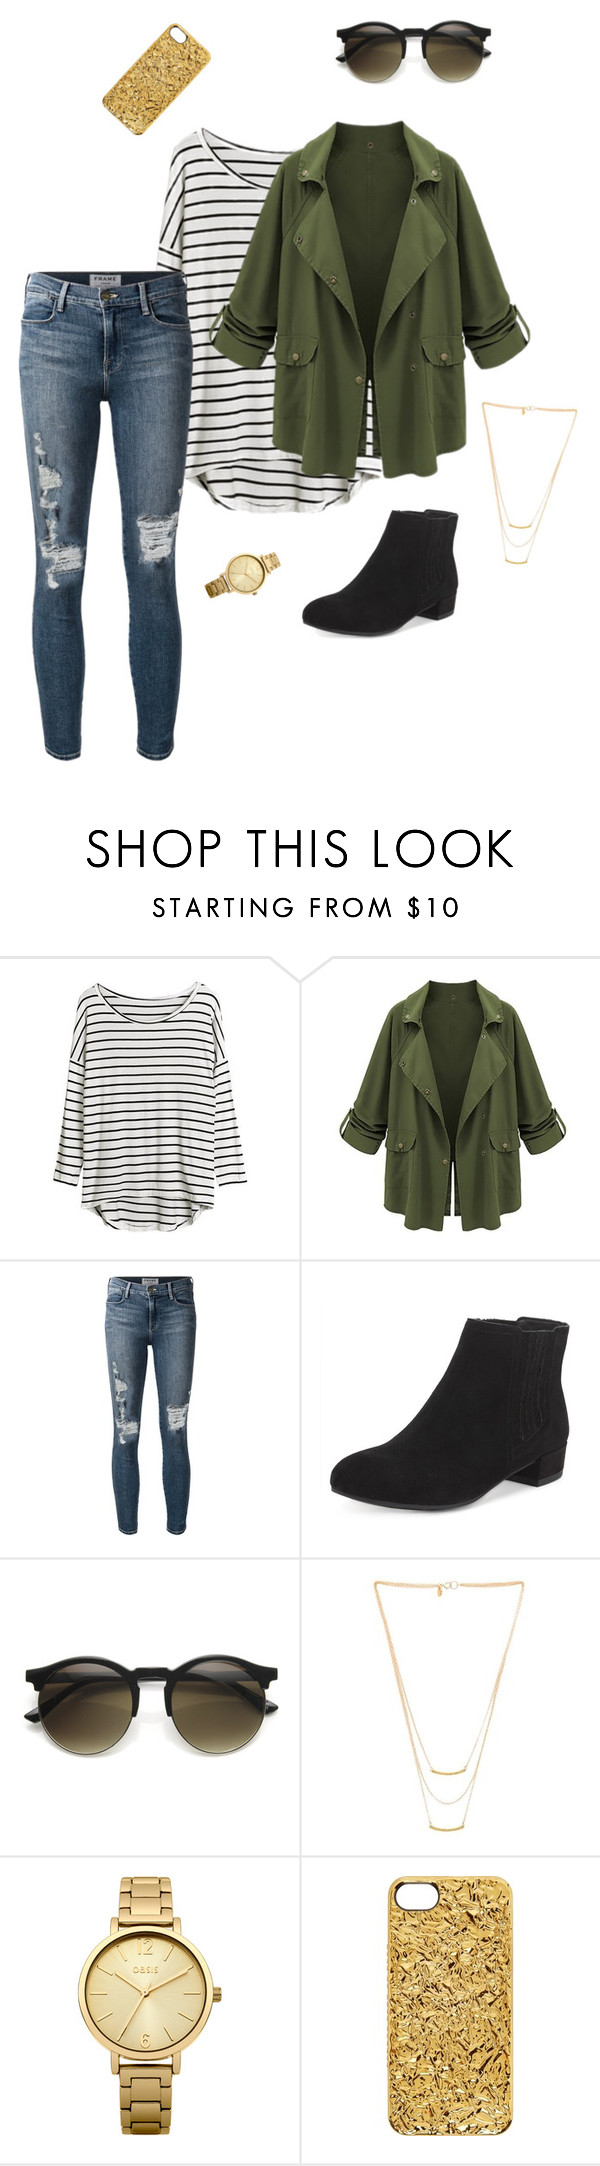 """""""Untitled #37"""" by molliebrigid ❤ liked on Polyvore featuring Frame Denim, Gorjana, Oasis and Marc by Marc Jacobs"""